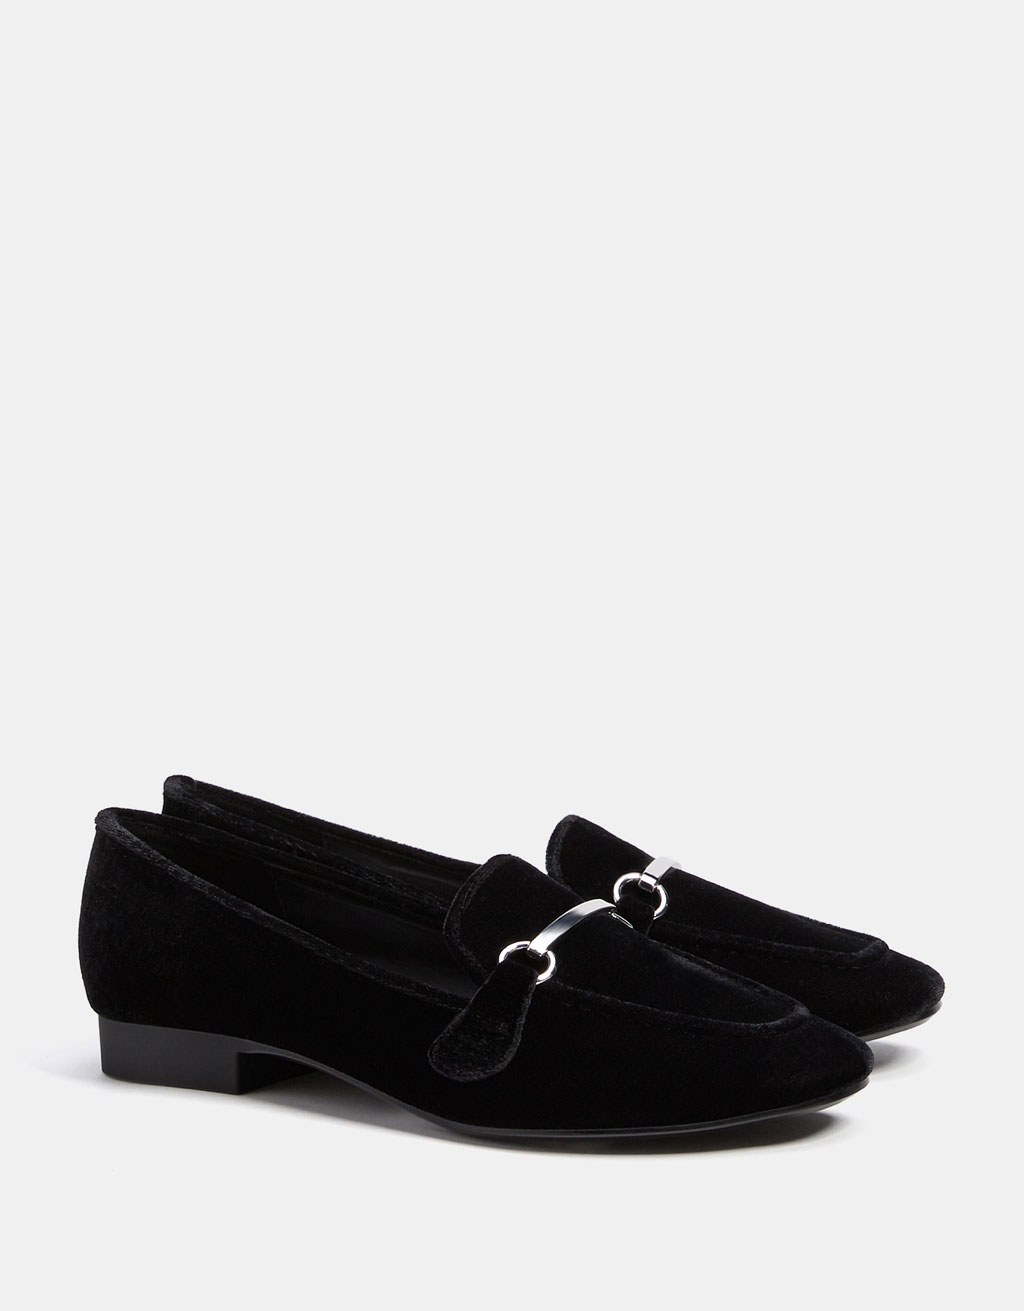 Velvet loafers with metallic appliqué.